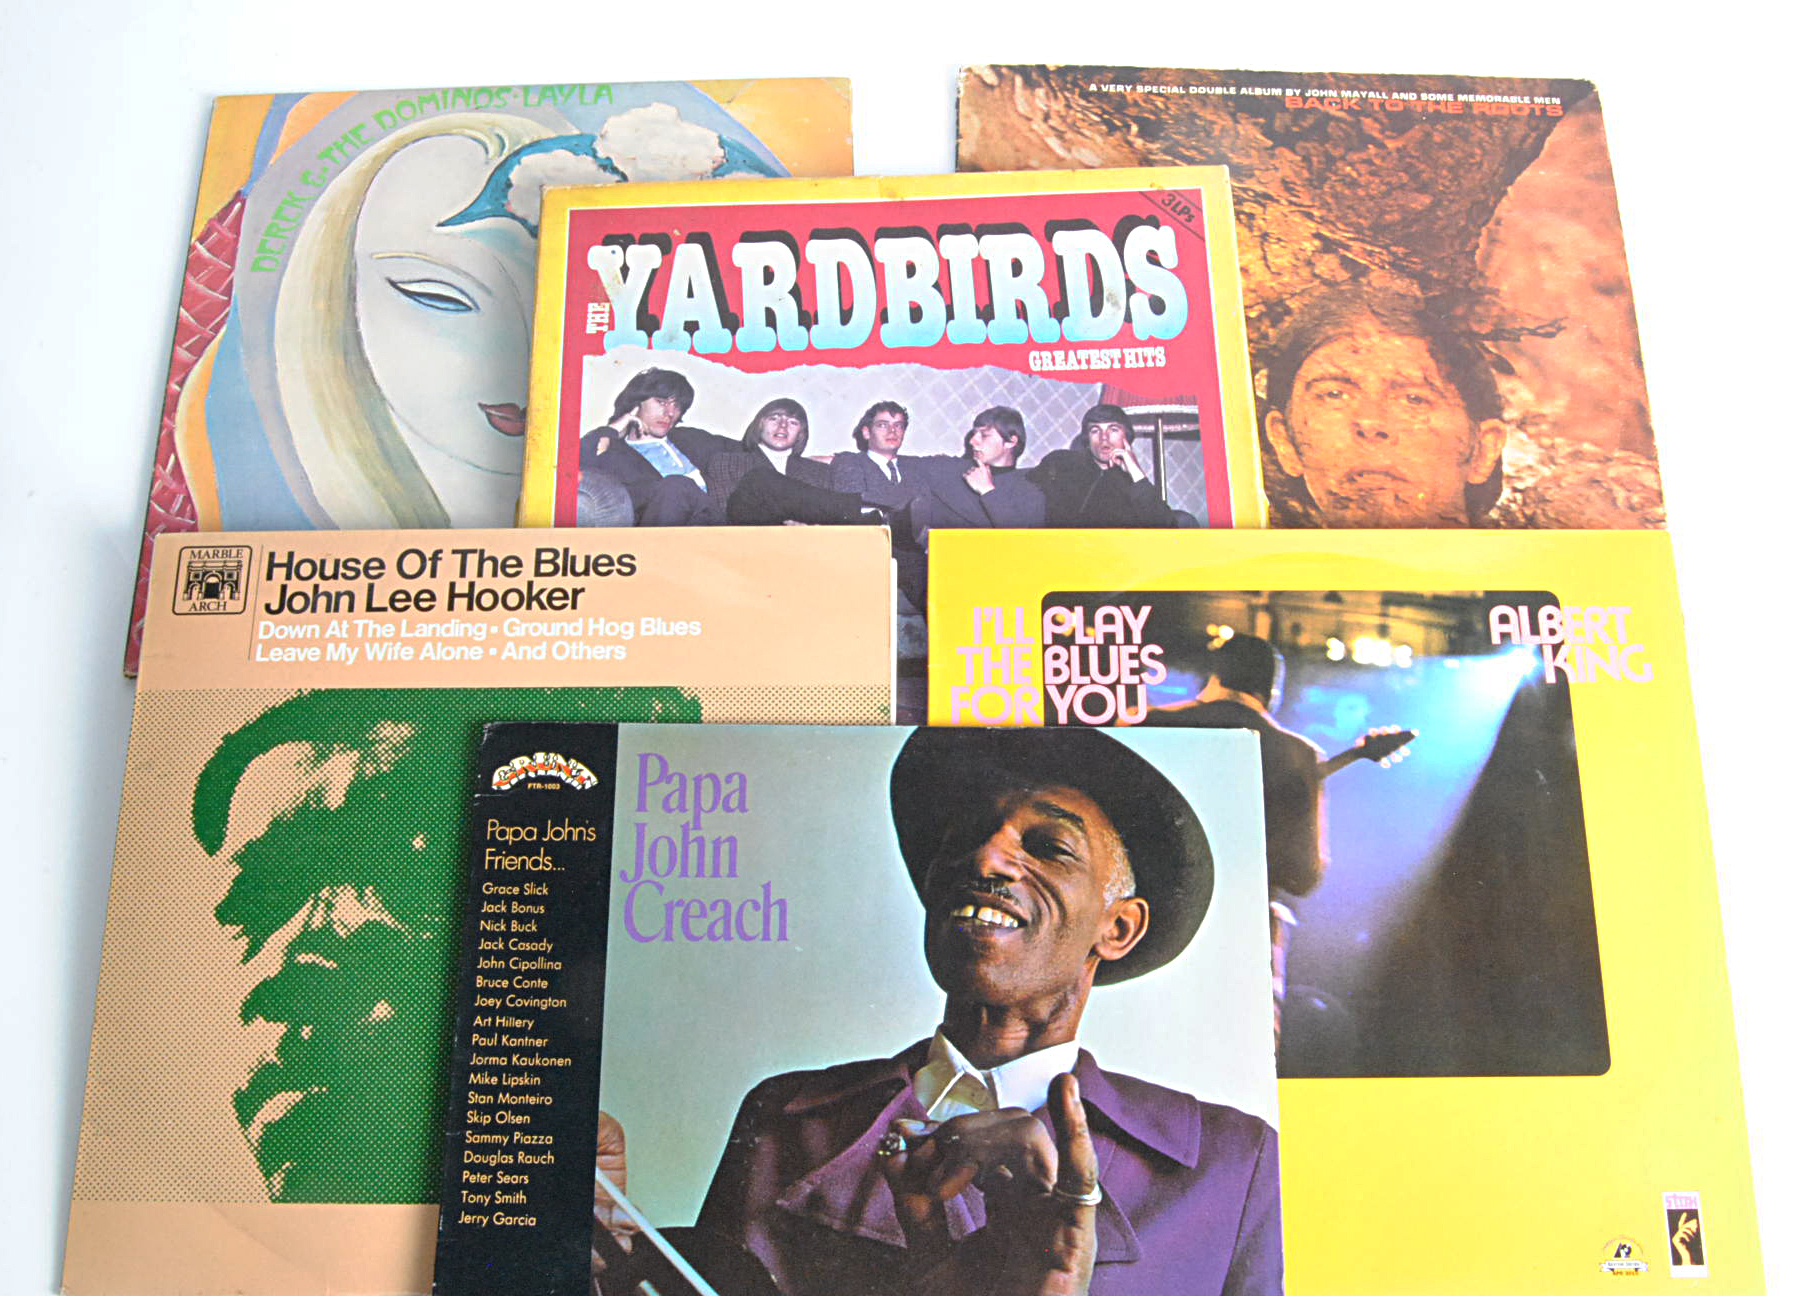 Blues LPs / Box Set, twelve albums and a Box Set of mainly Blues / Blues Rock with artists